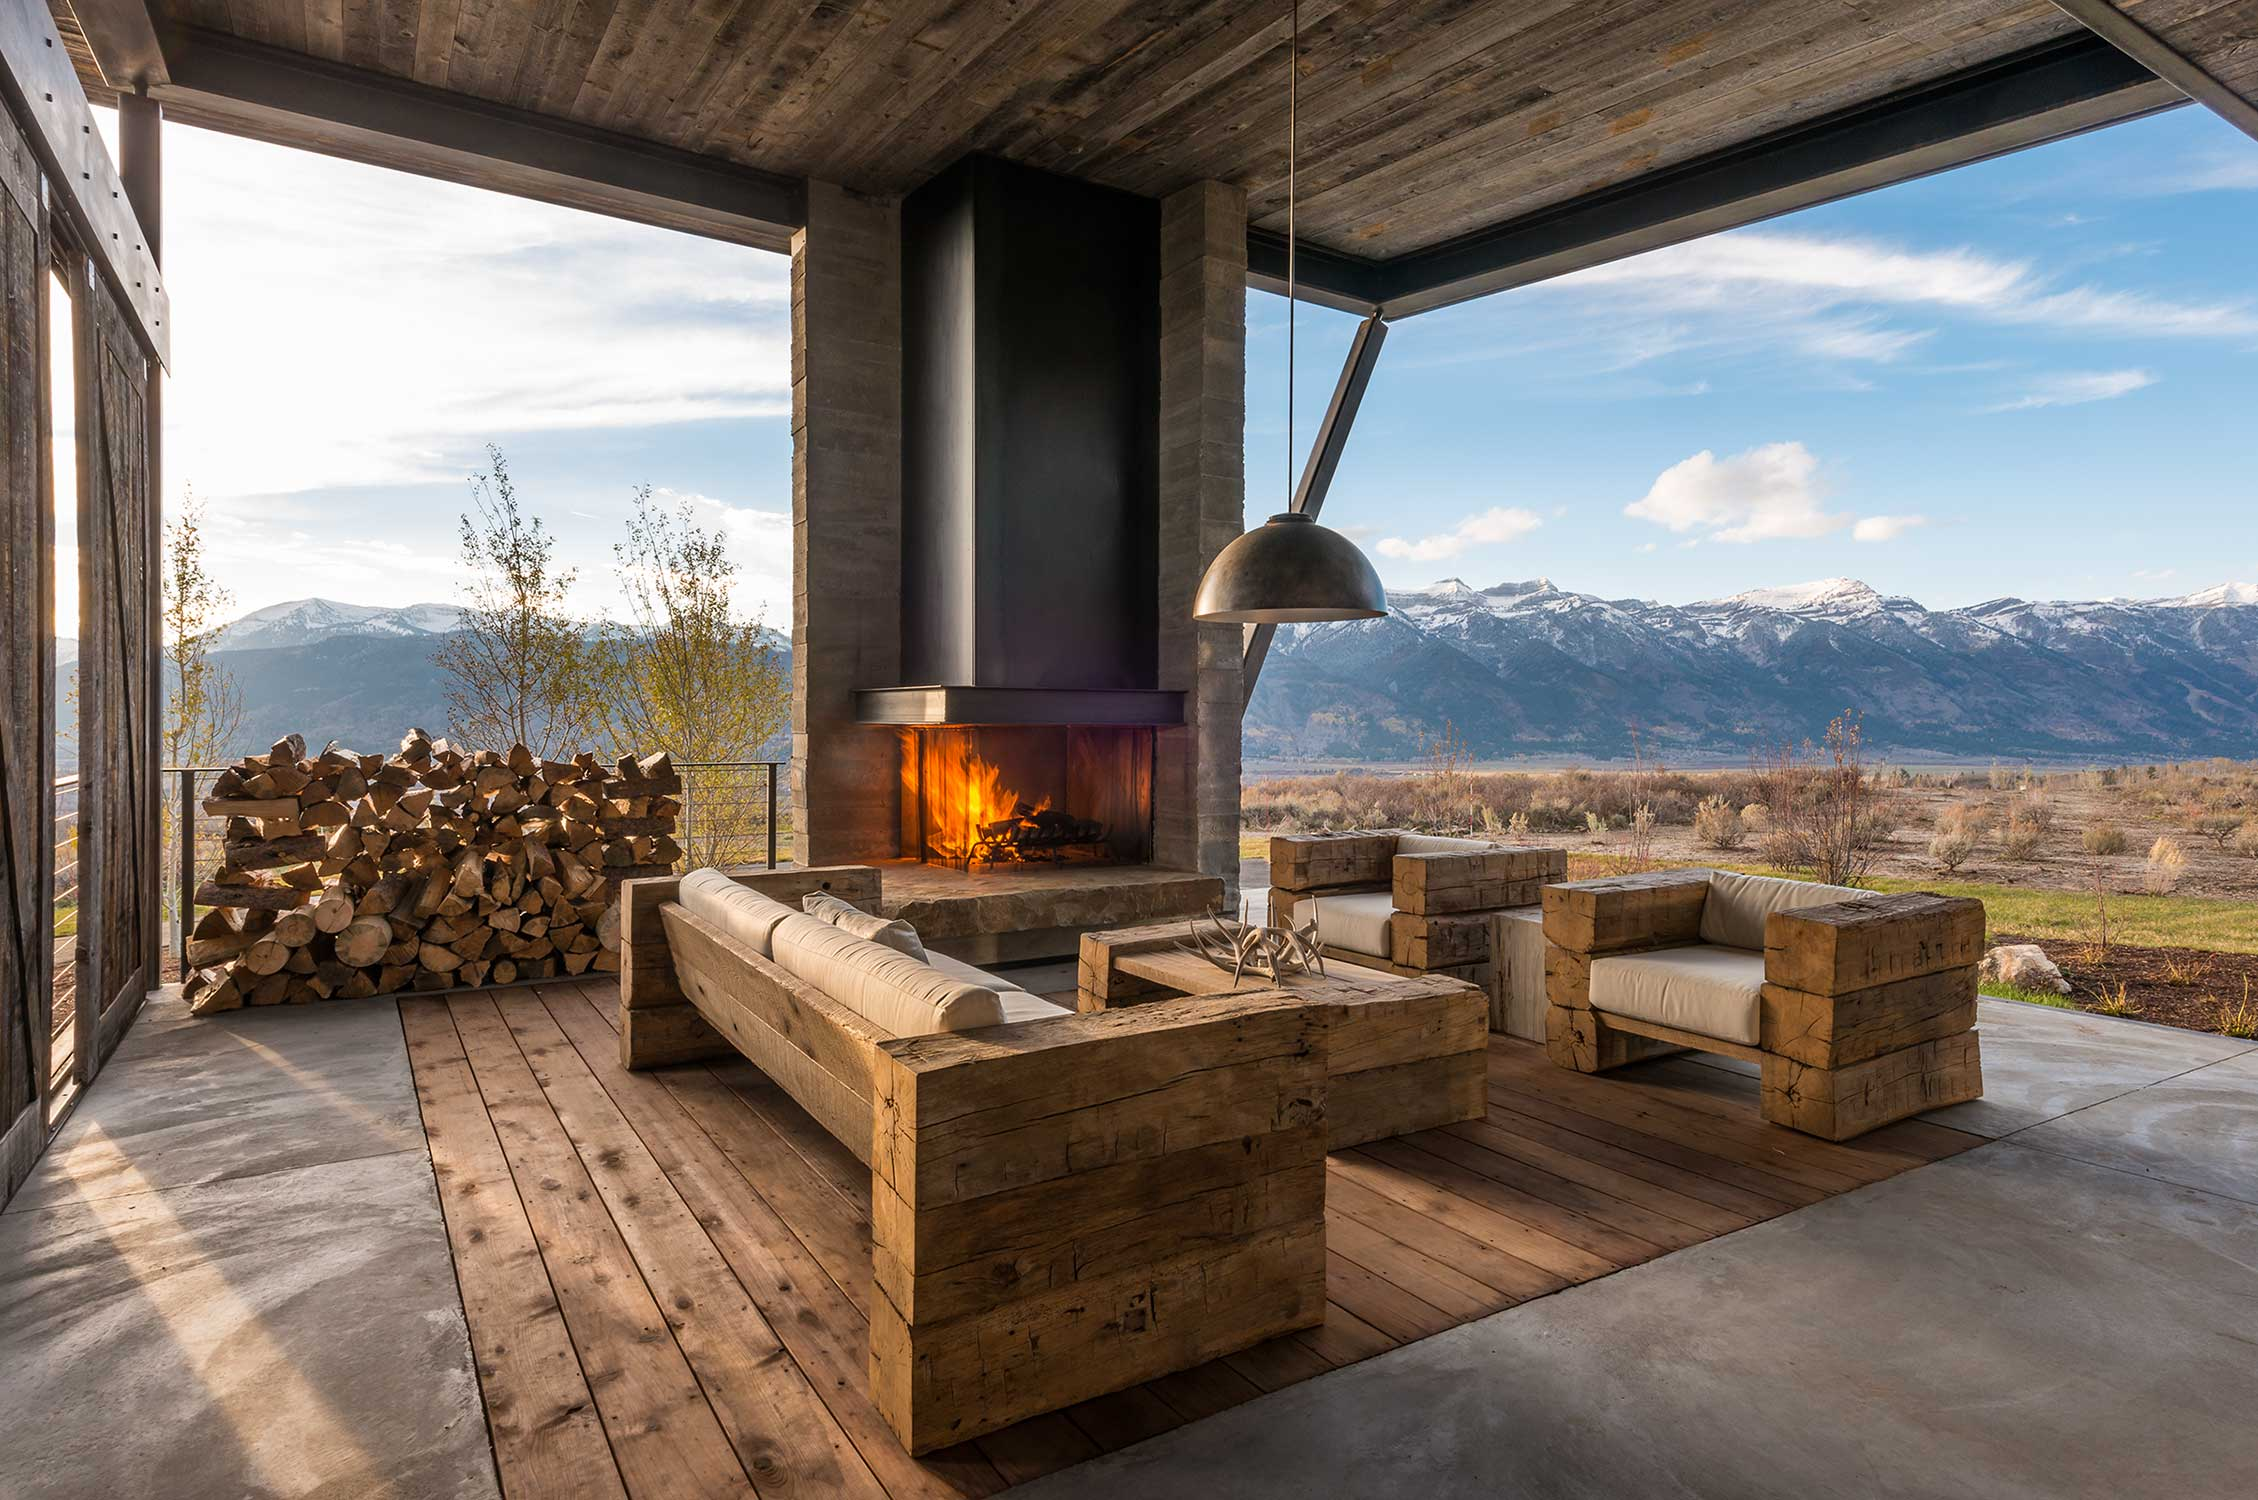 Architecture Design Inspiration residential design inspiration: cozy modern fireplaces - studio mm